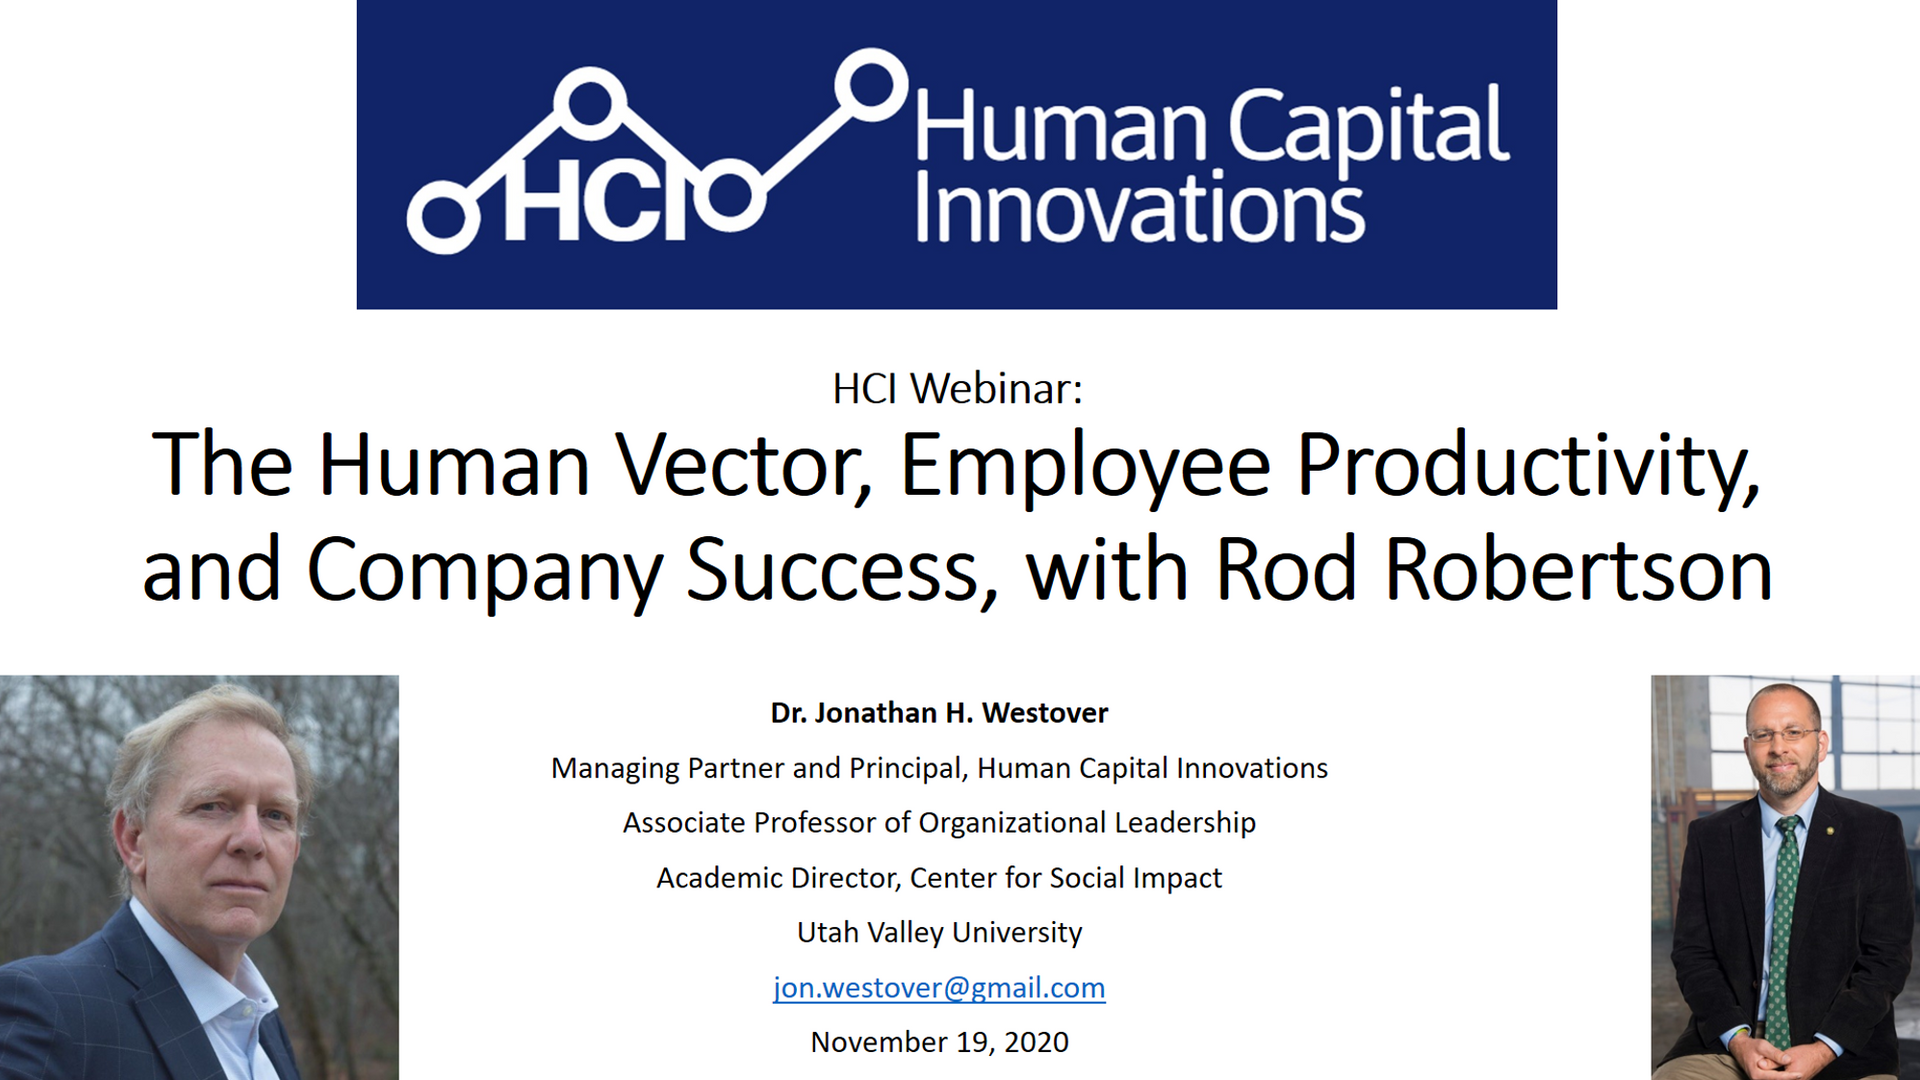 The Human Vector, Employee Productivity, and Company Success